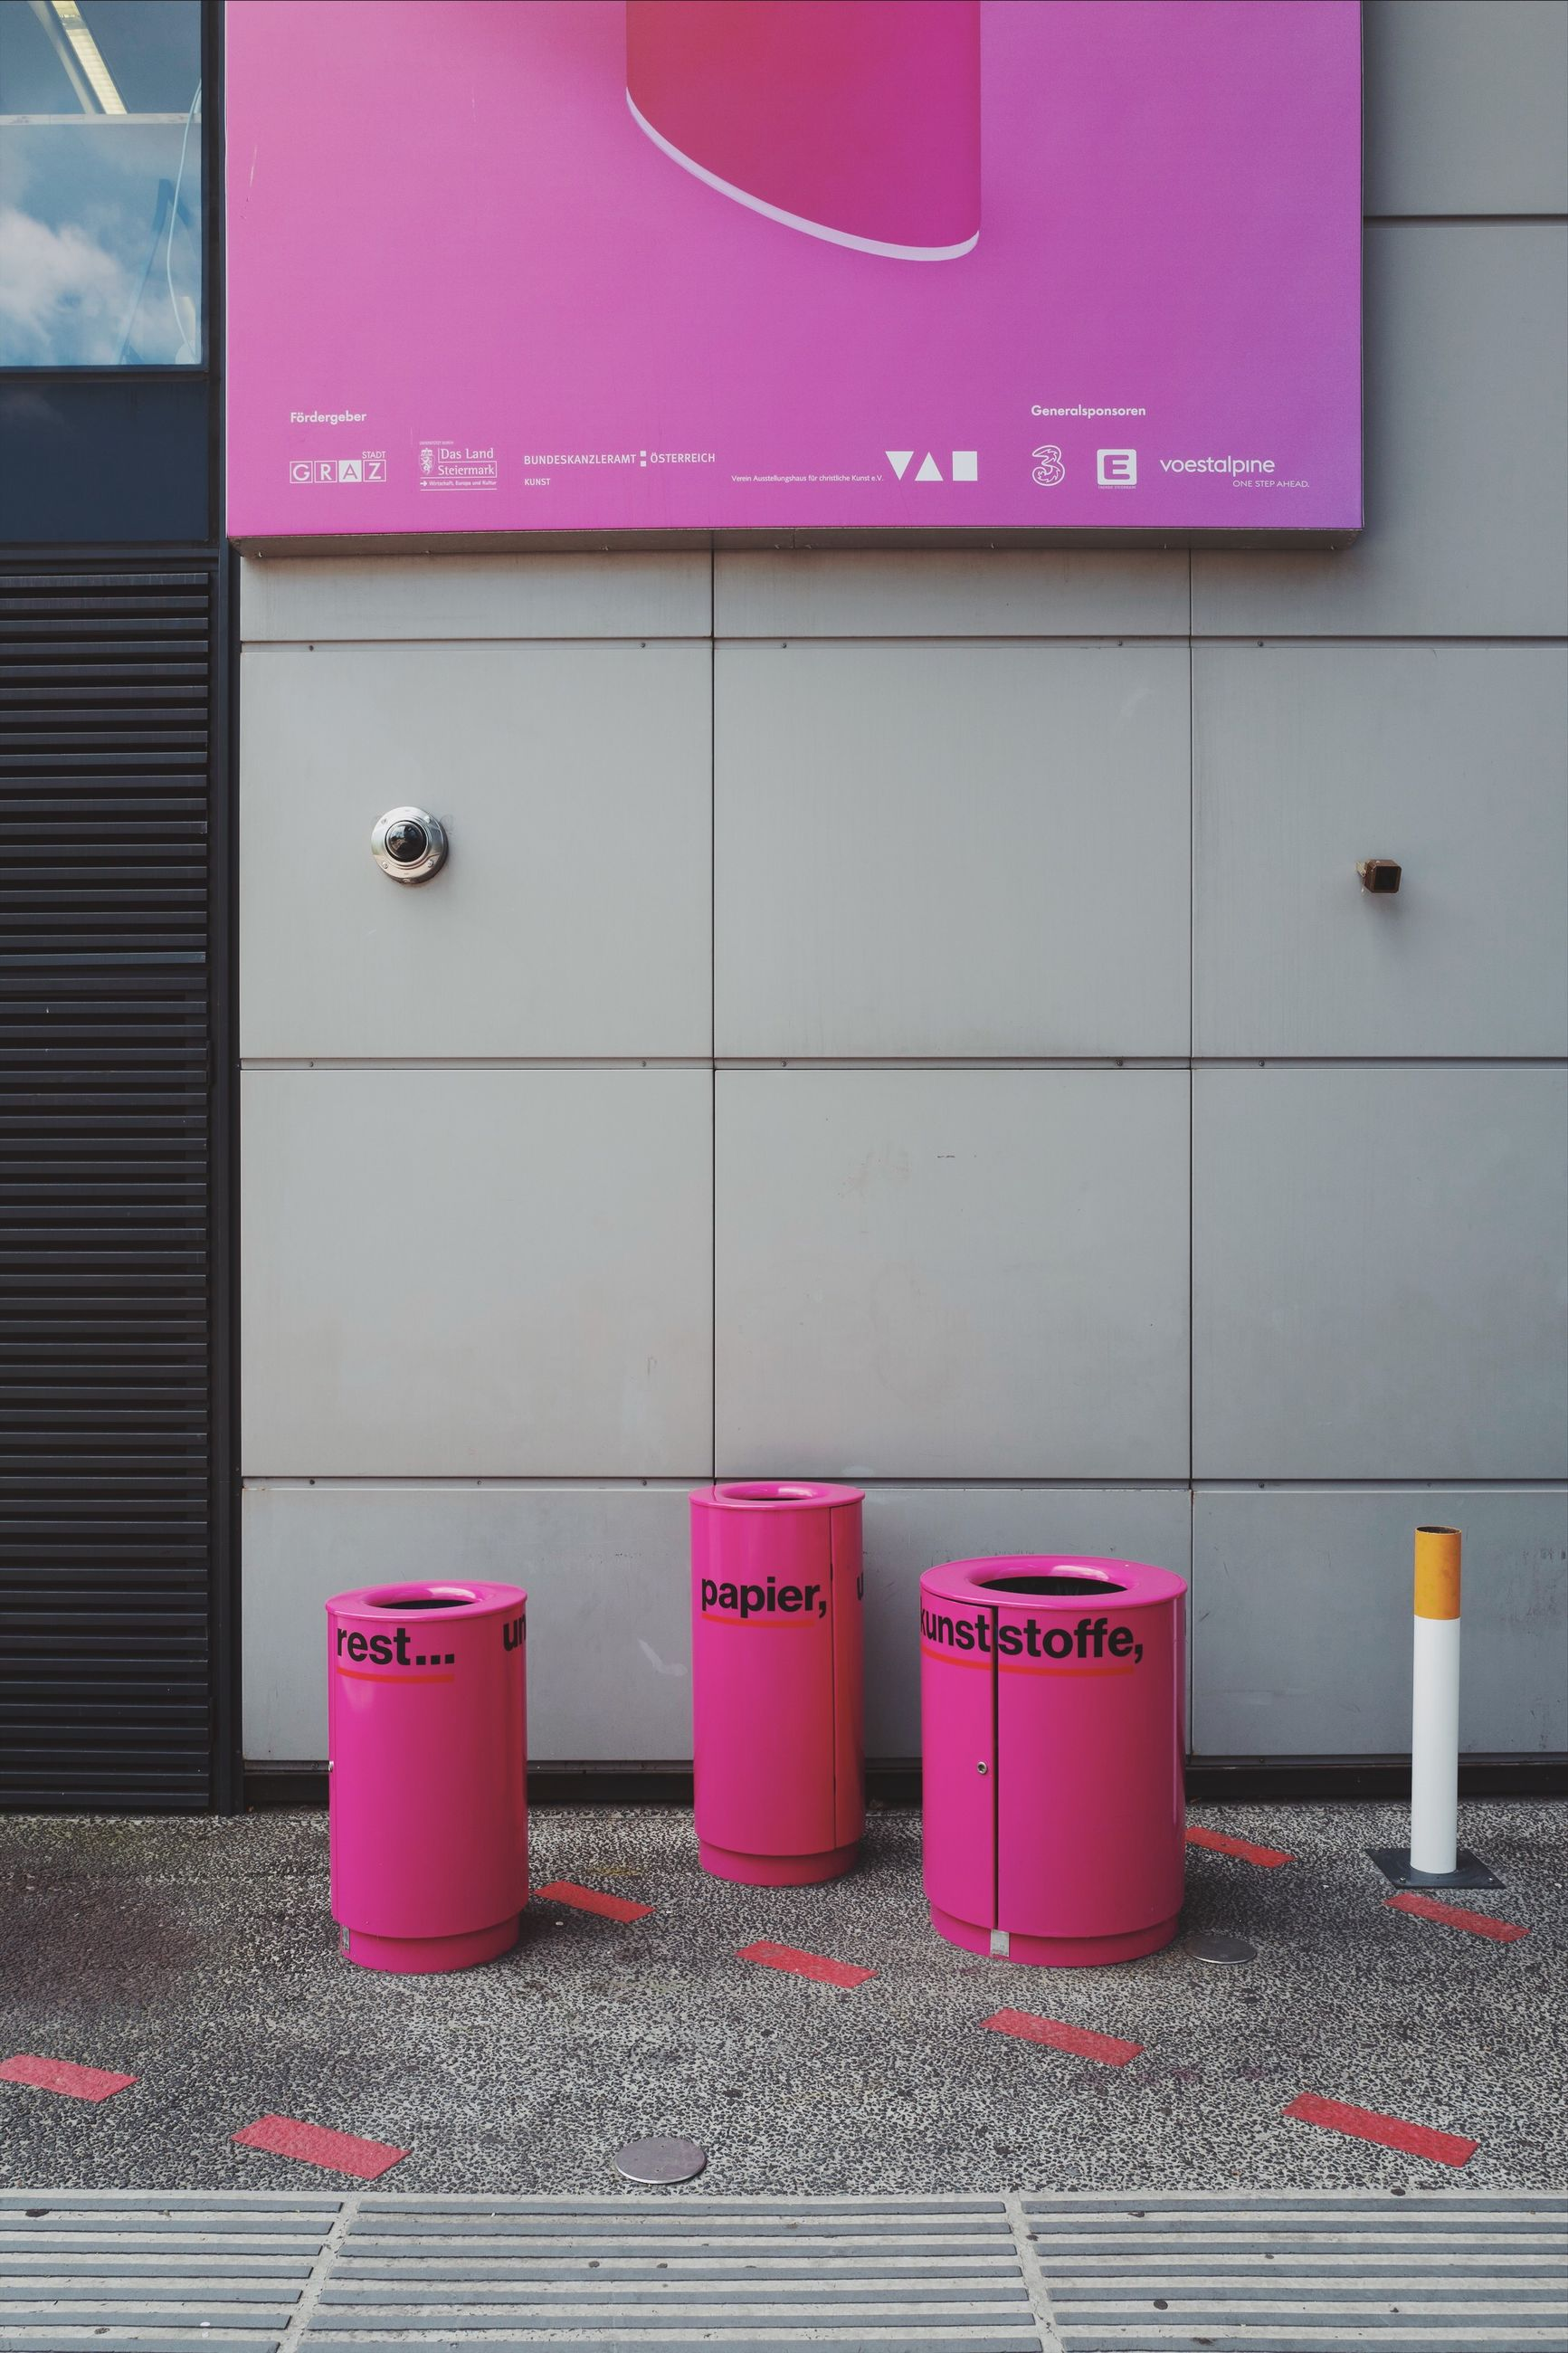 pink color, communication, text, no people, western script, garbage bin, container, day, architecture, non-western script, side by side, built structure, script, wall - building feature, indoors, sign, hygiene, red, number